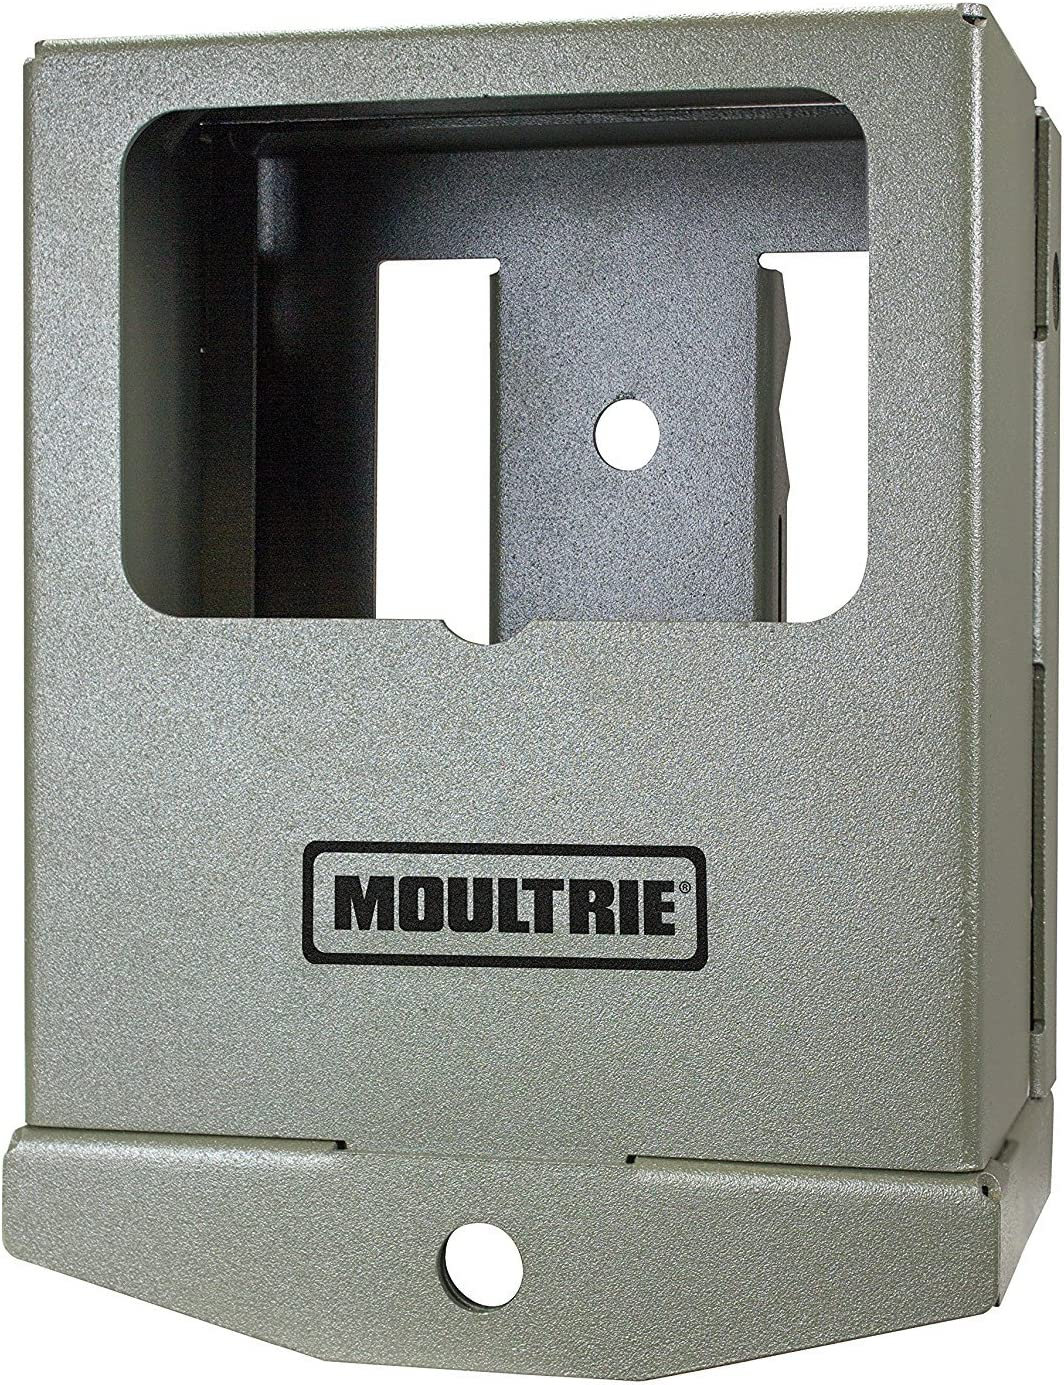 Moultrie S-Series Game Camera Security Box Fits S-50I Grey